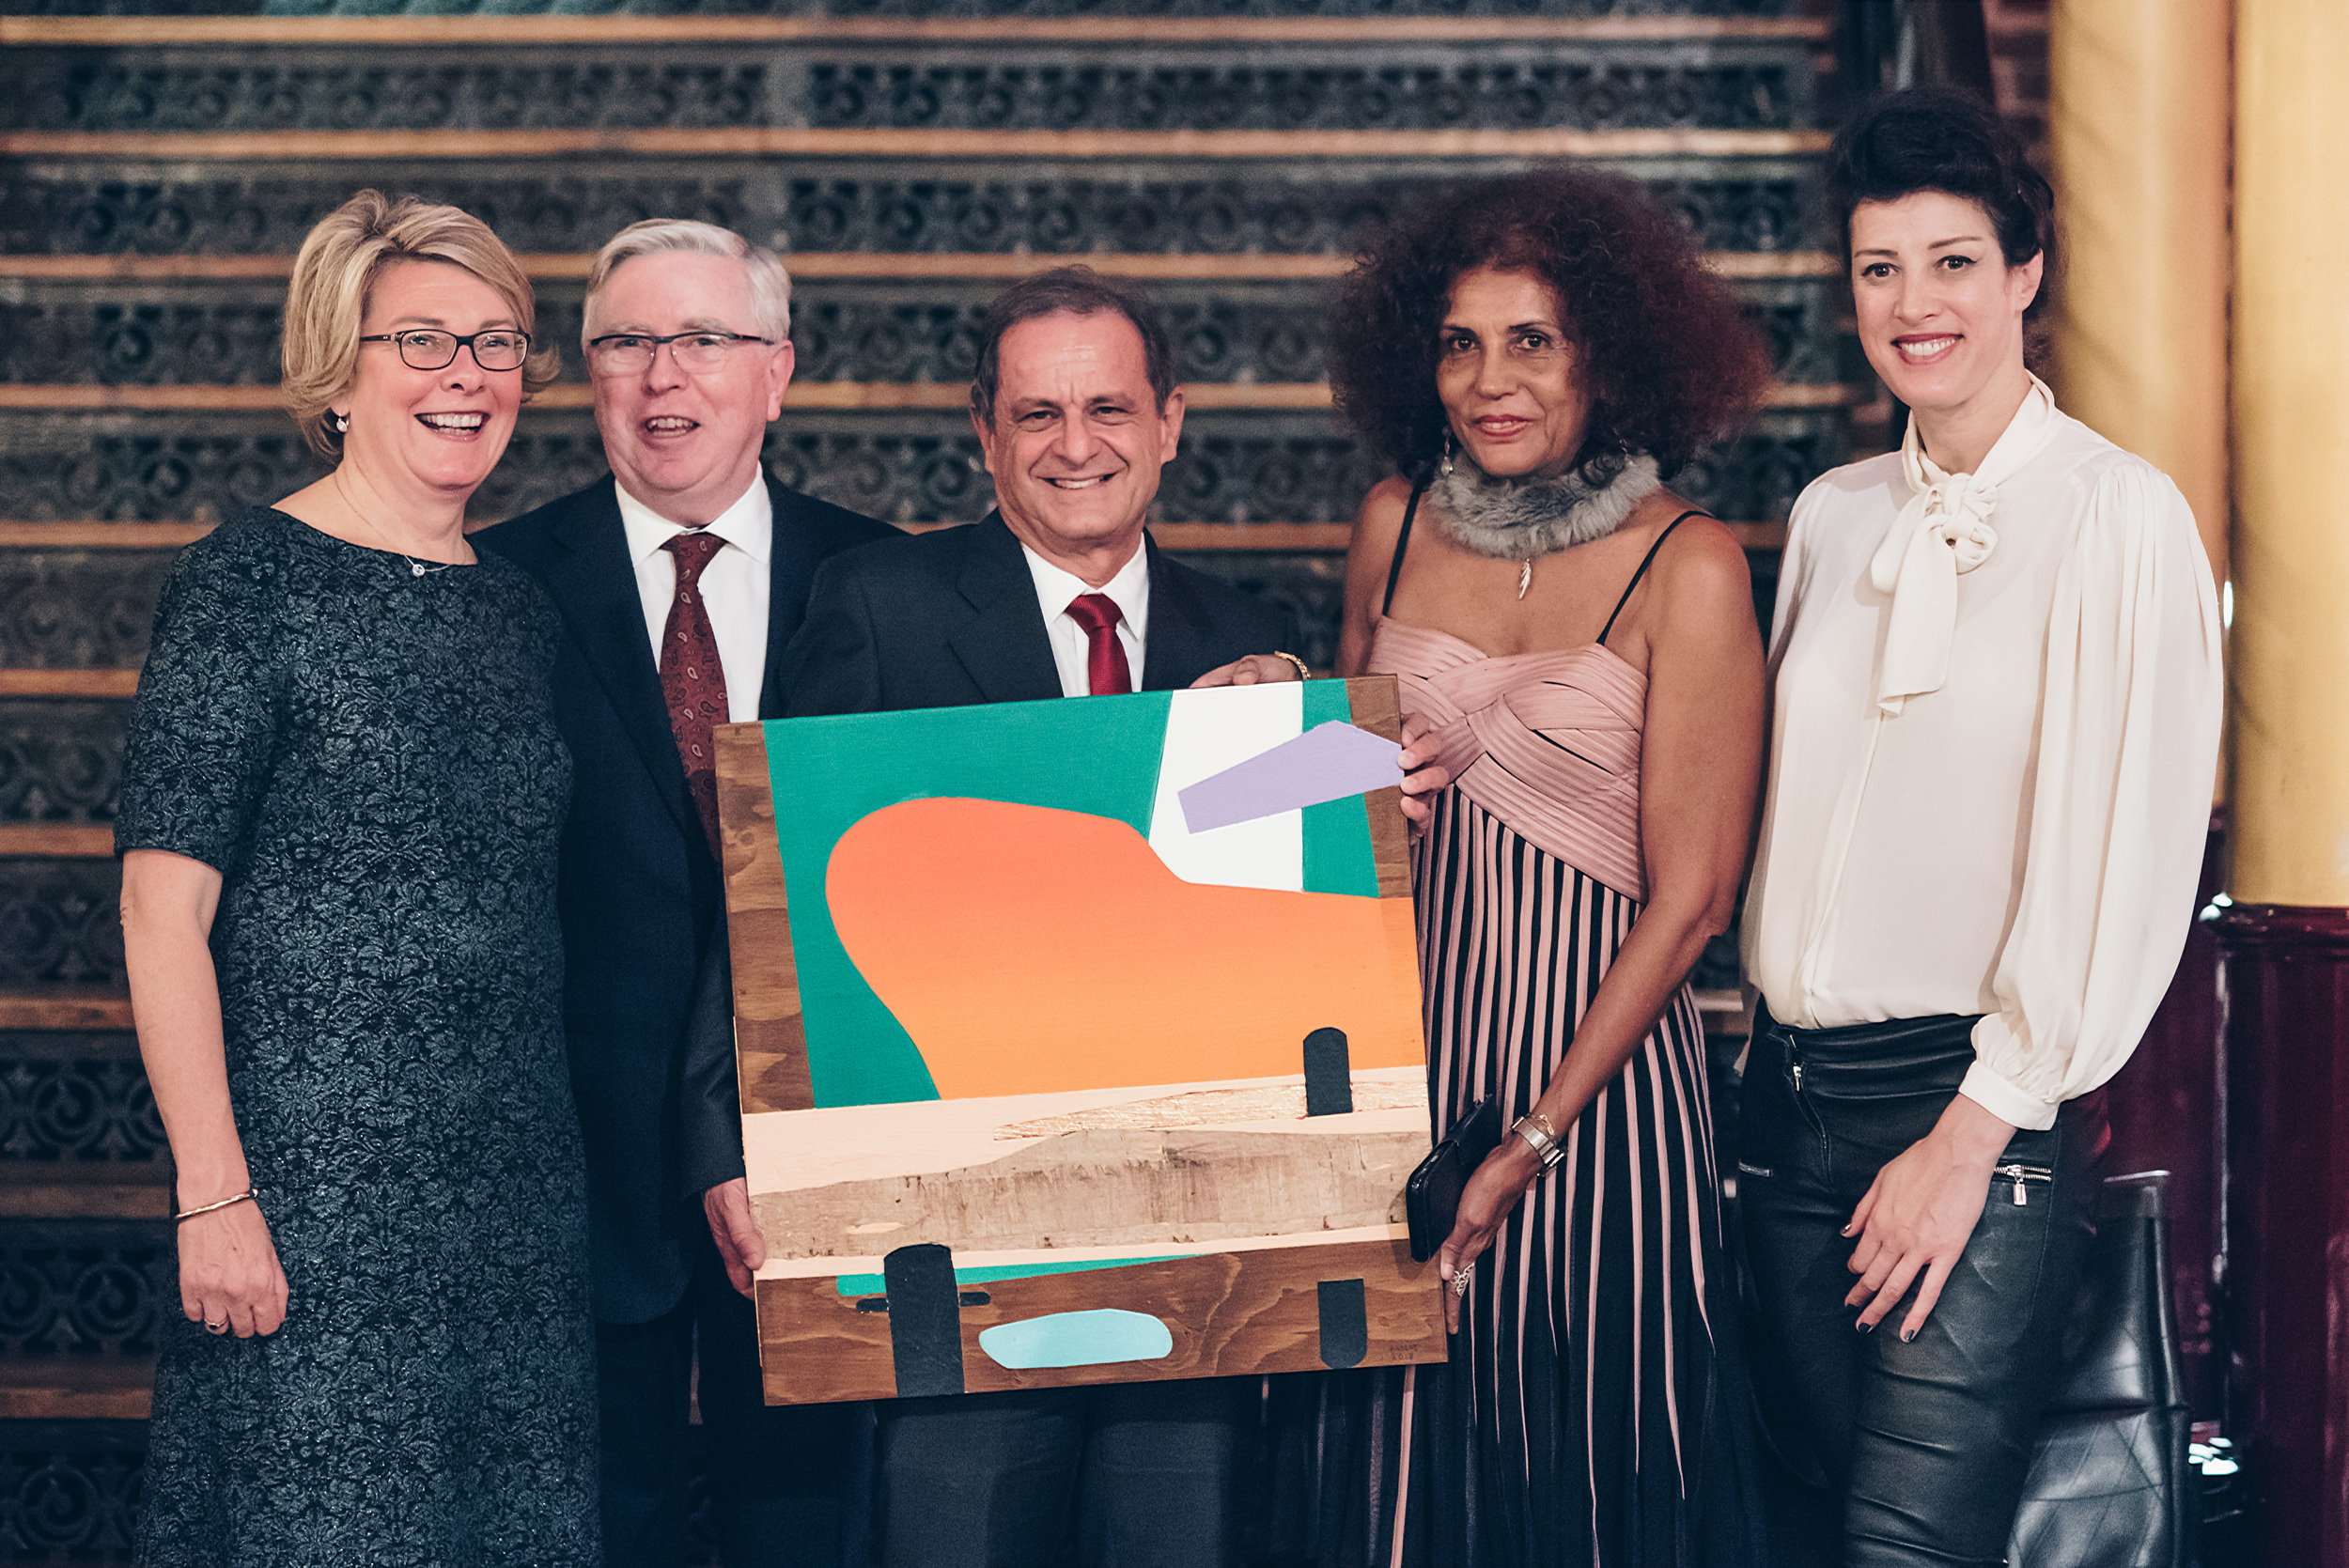 From left to right: Isabelle Ryckbost (ESPO), Pat Cox (chariman Jury ESPO Award), Philippe Kalil (Guadeloupe), Viviane Francois-Julien (Guadeloupe ) and me (design ESPO Award).